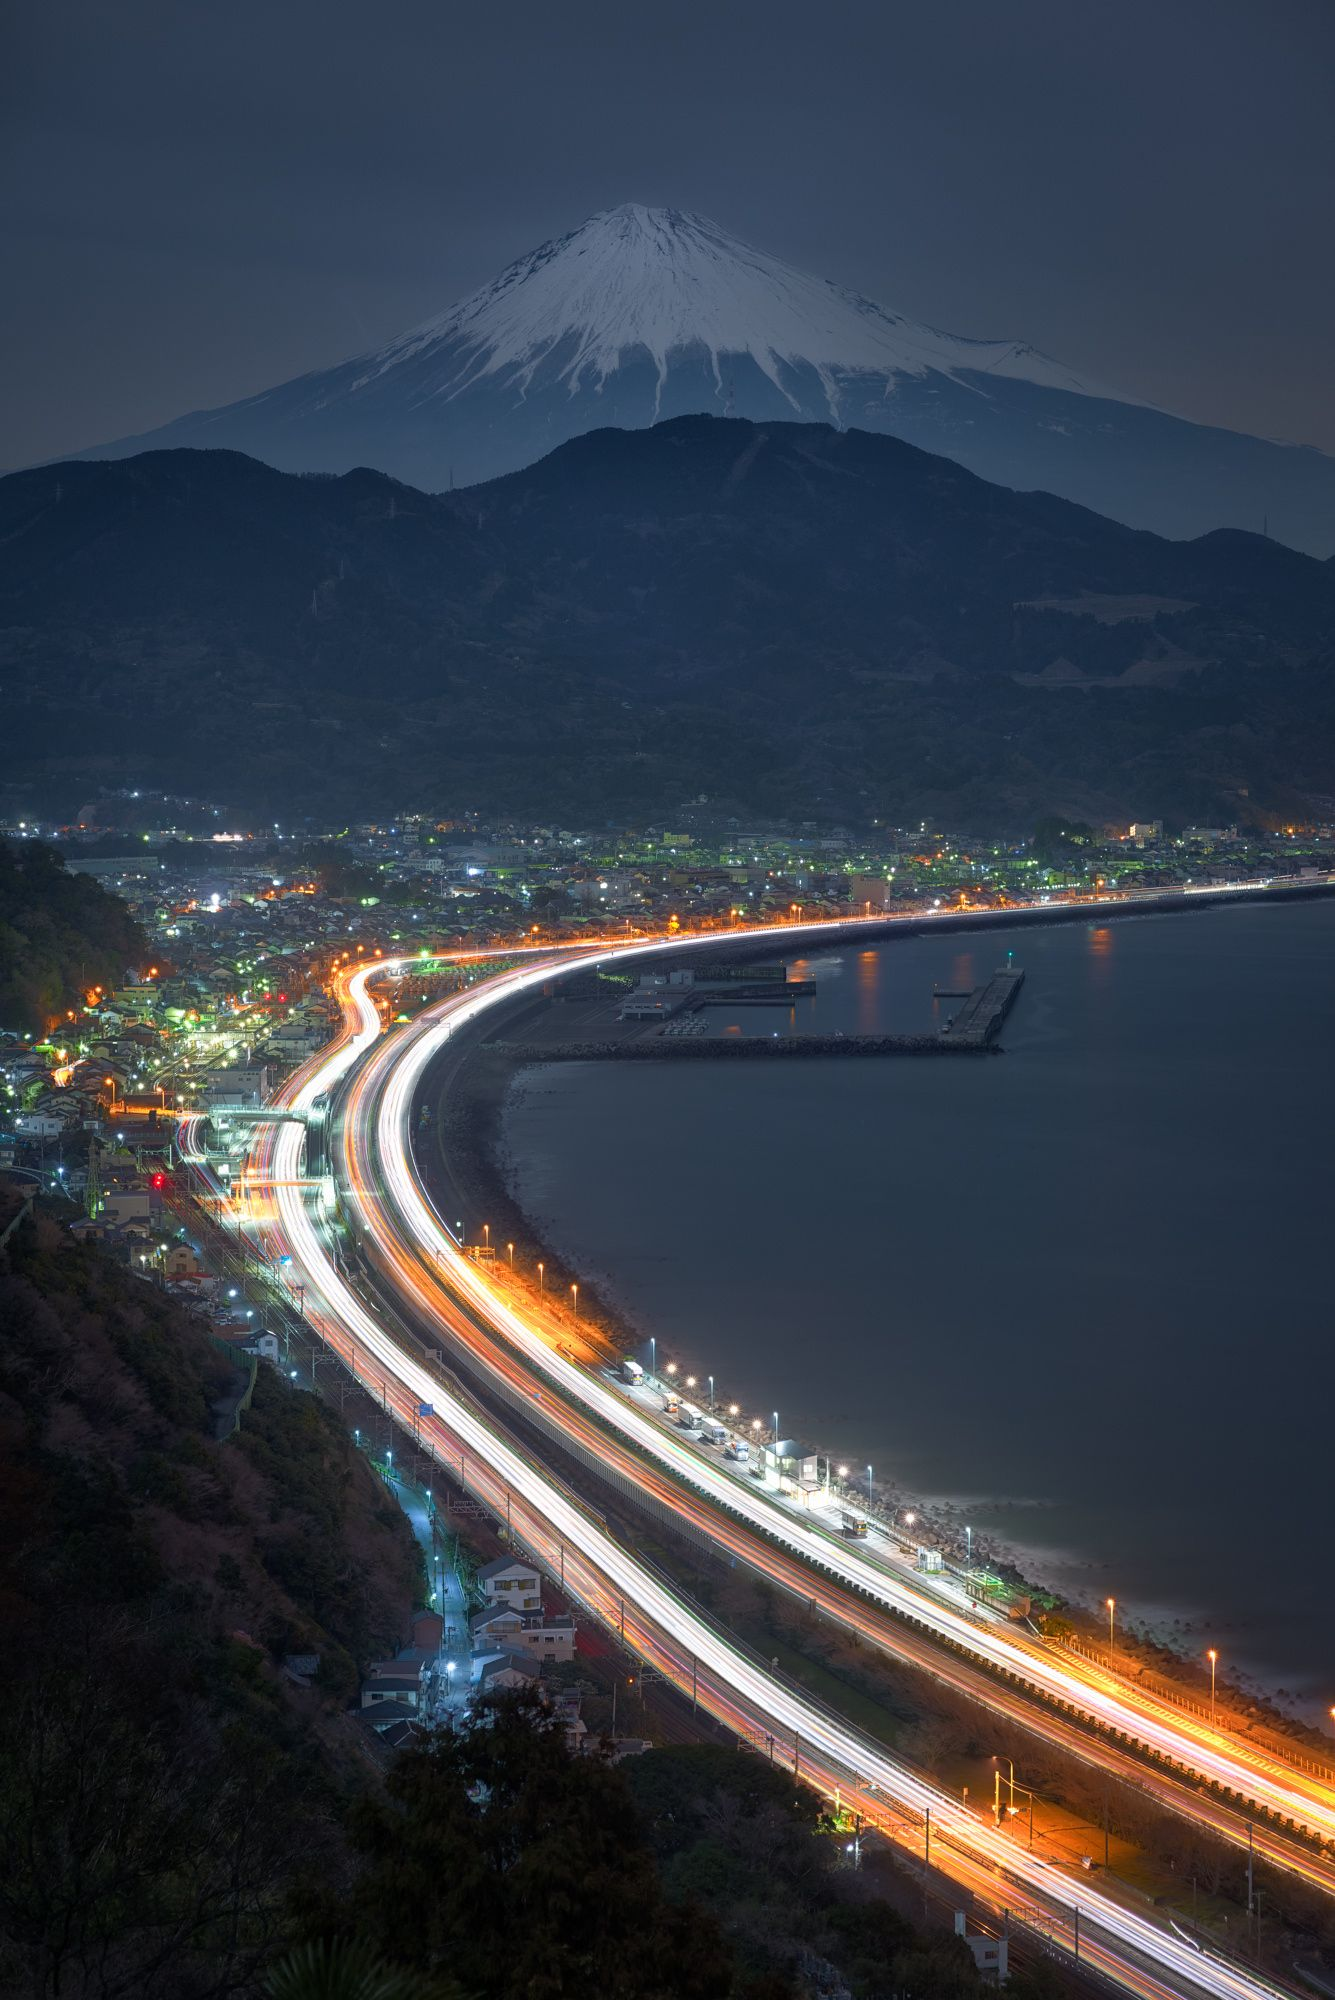 FUJI-Kiseki by Yuga Kurita on 500px